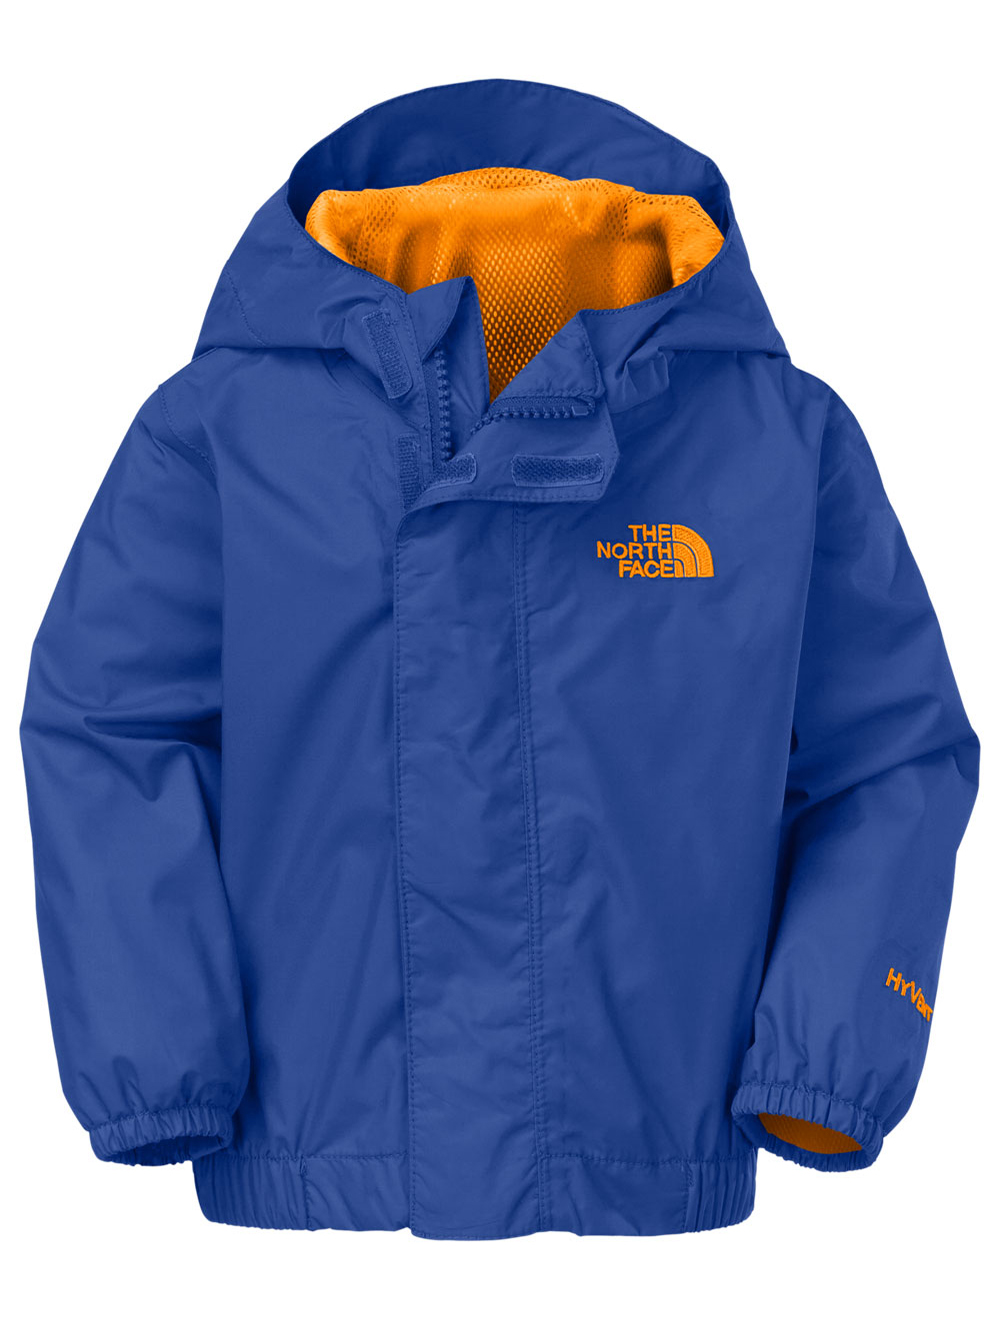 The North Face Baby Boys' Tailout Rain Jacket